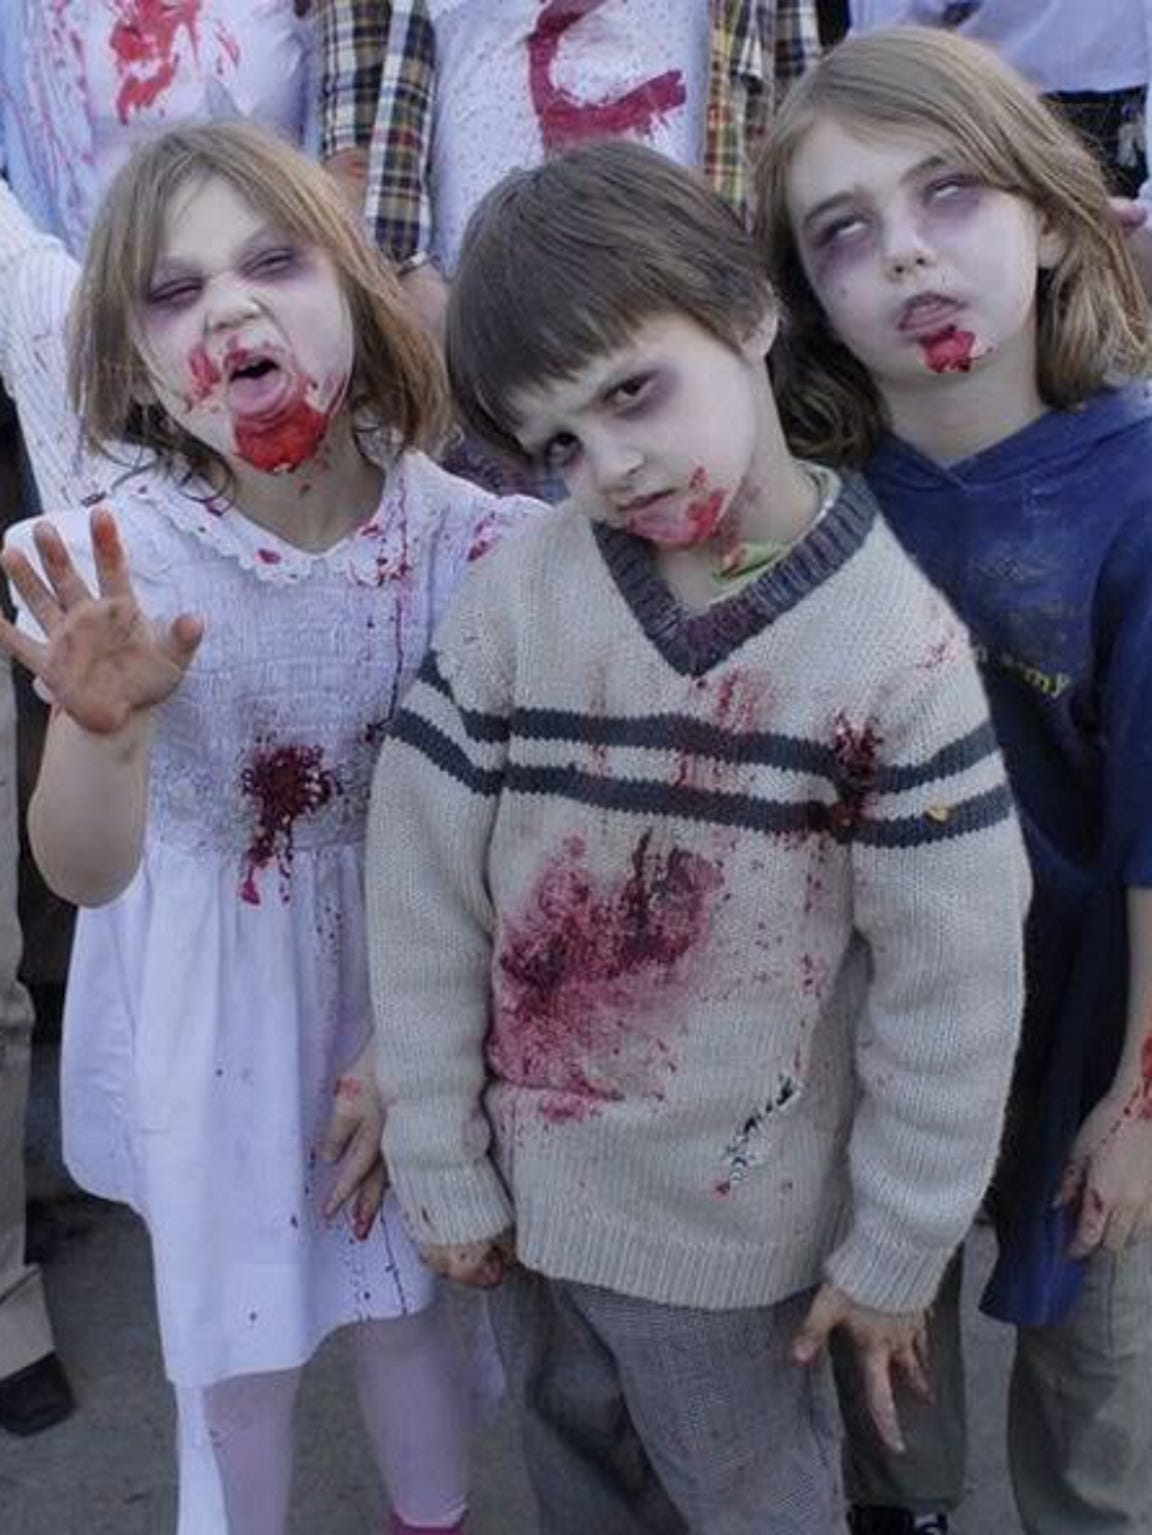 Kids participate in a previous Zombie Walk in Downtown